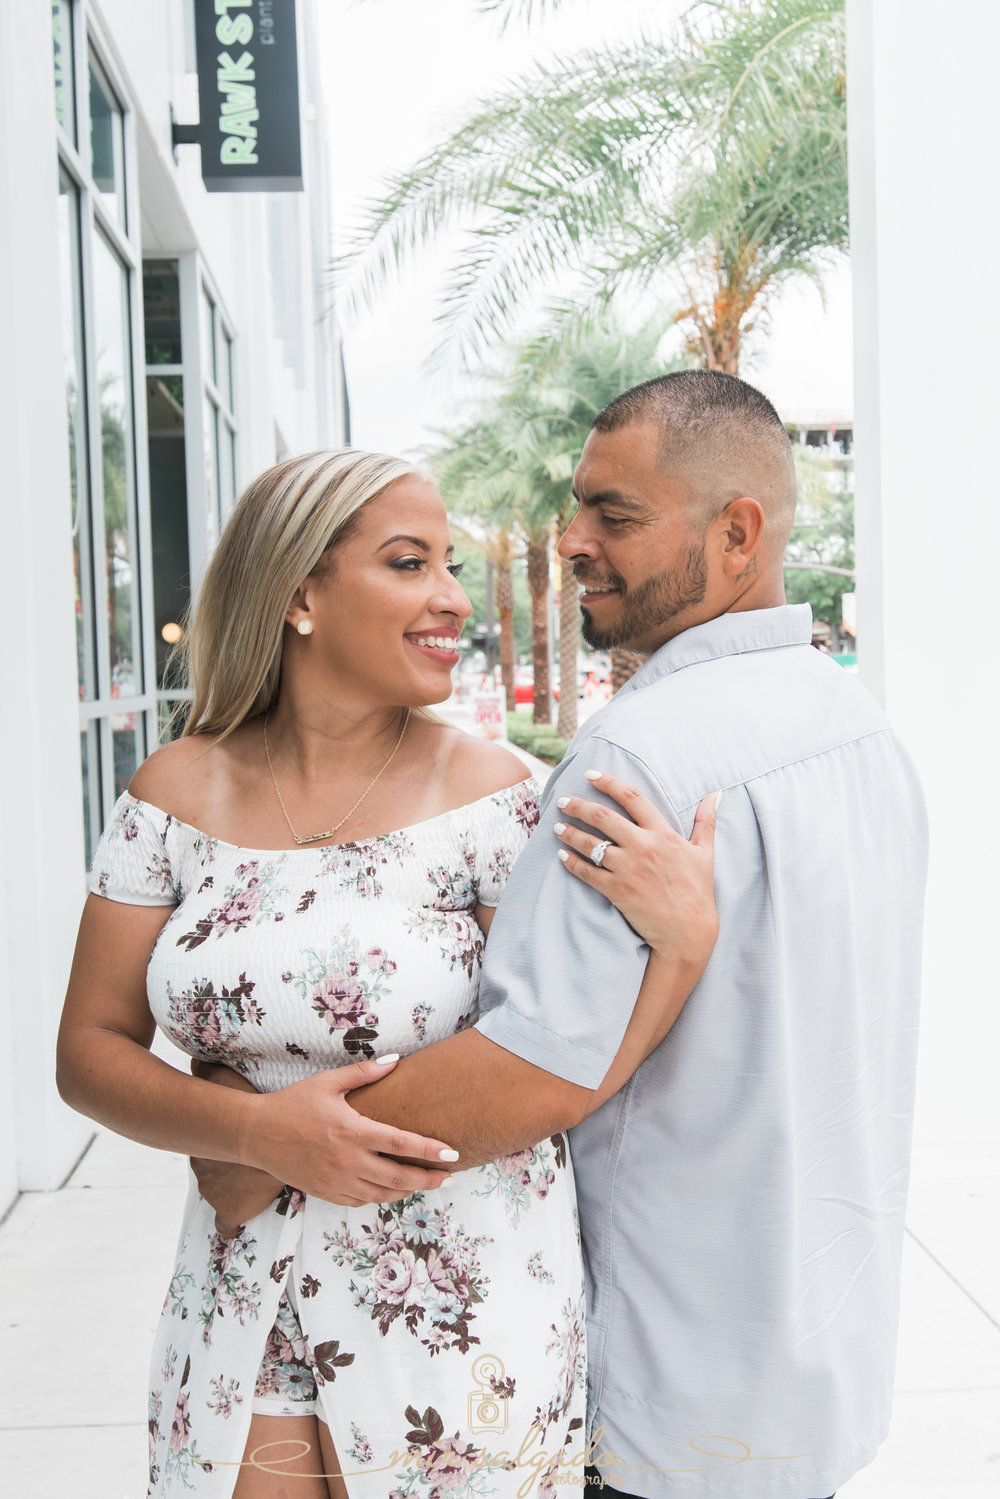 miriam-photography-tampa-st-pete-engagement-session-sunny-floral-dress